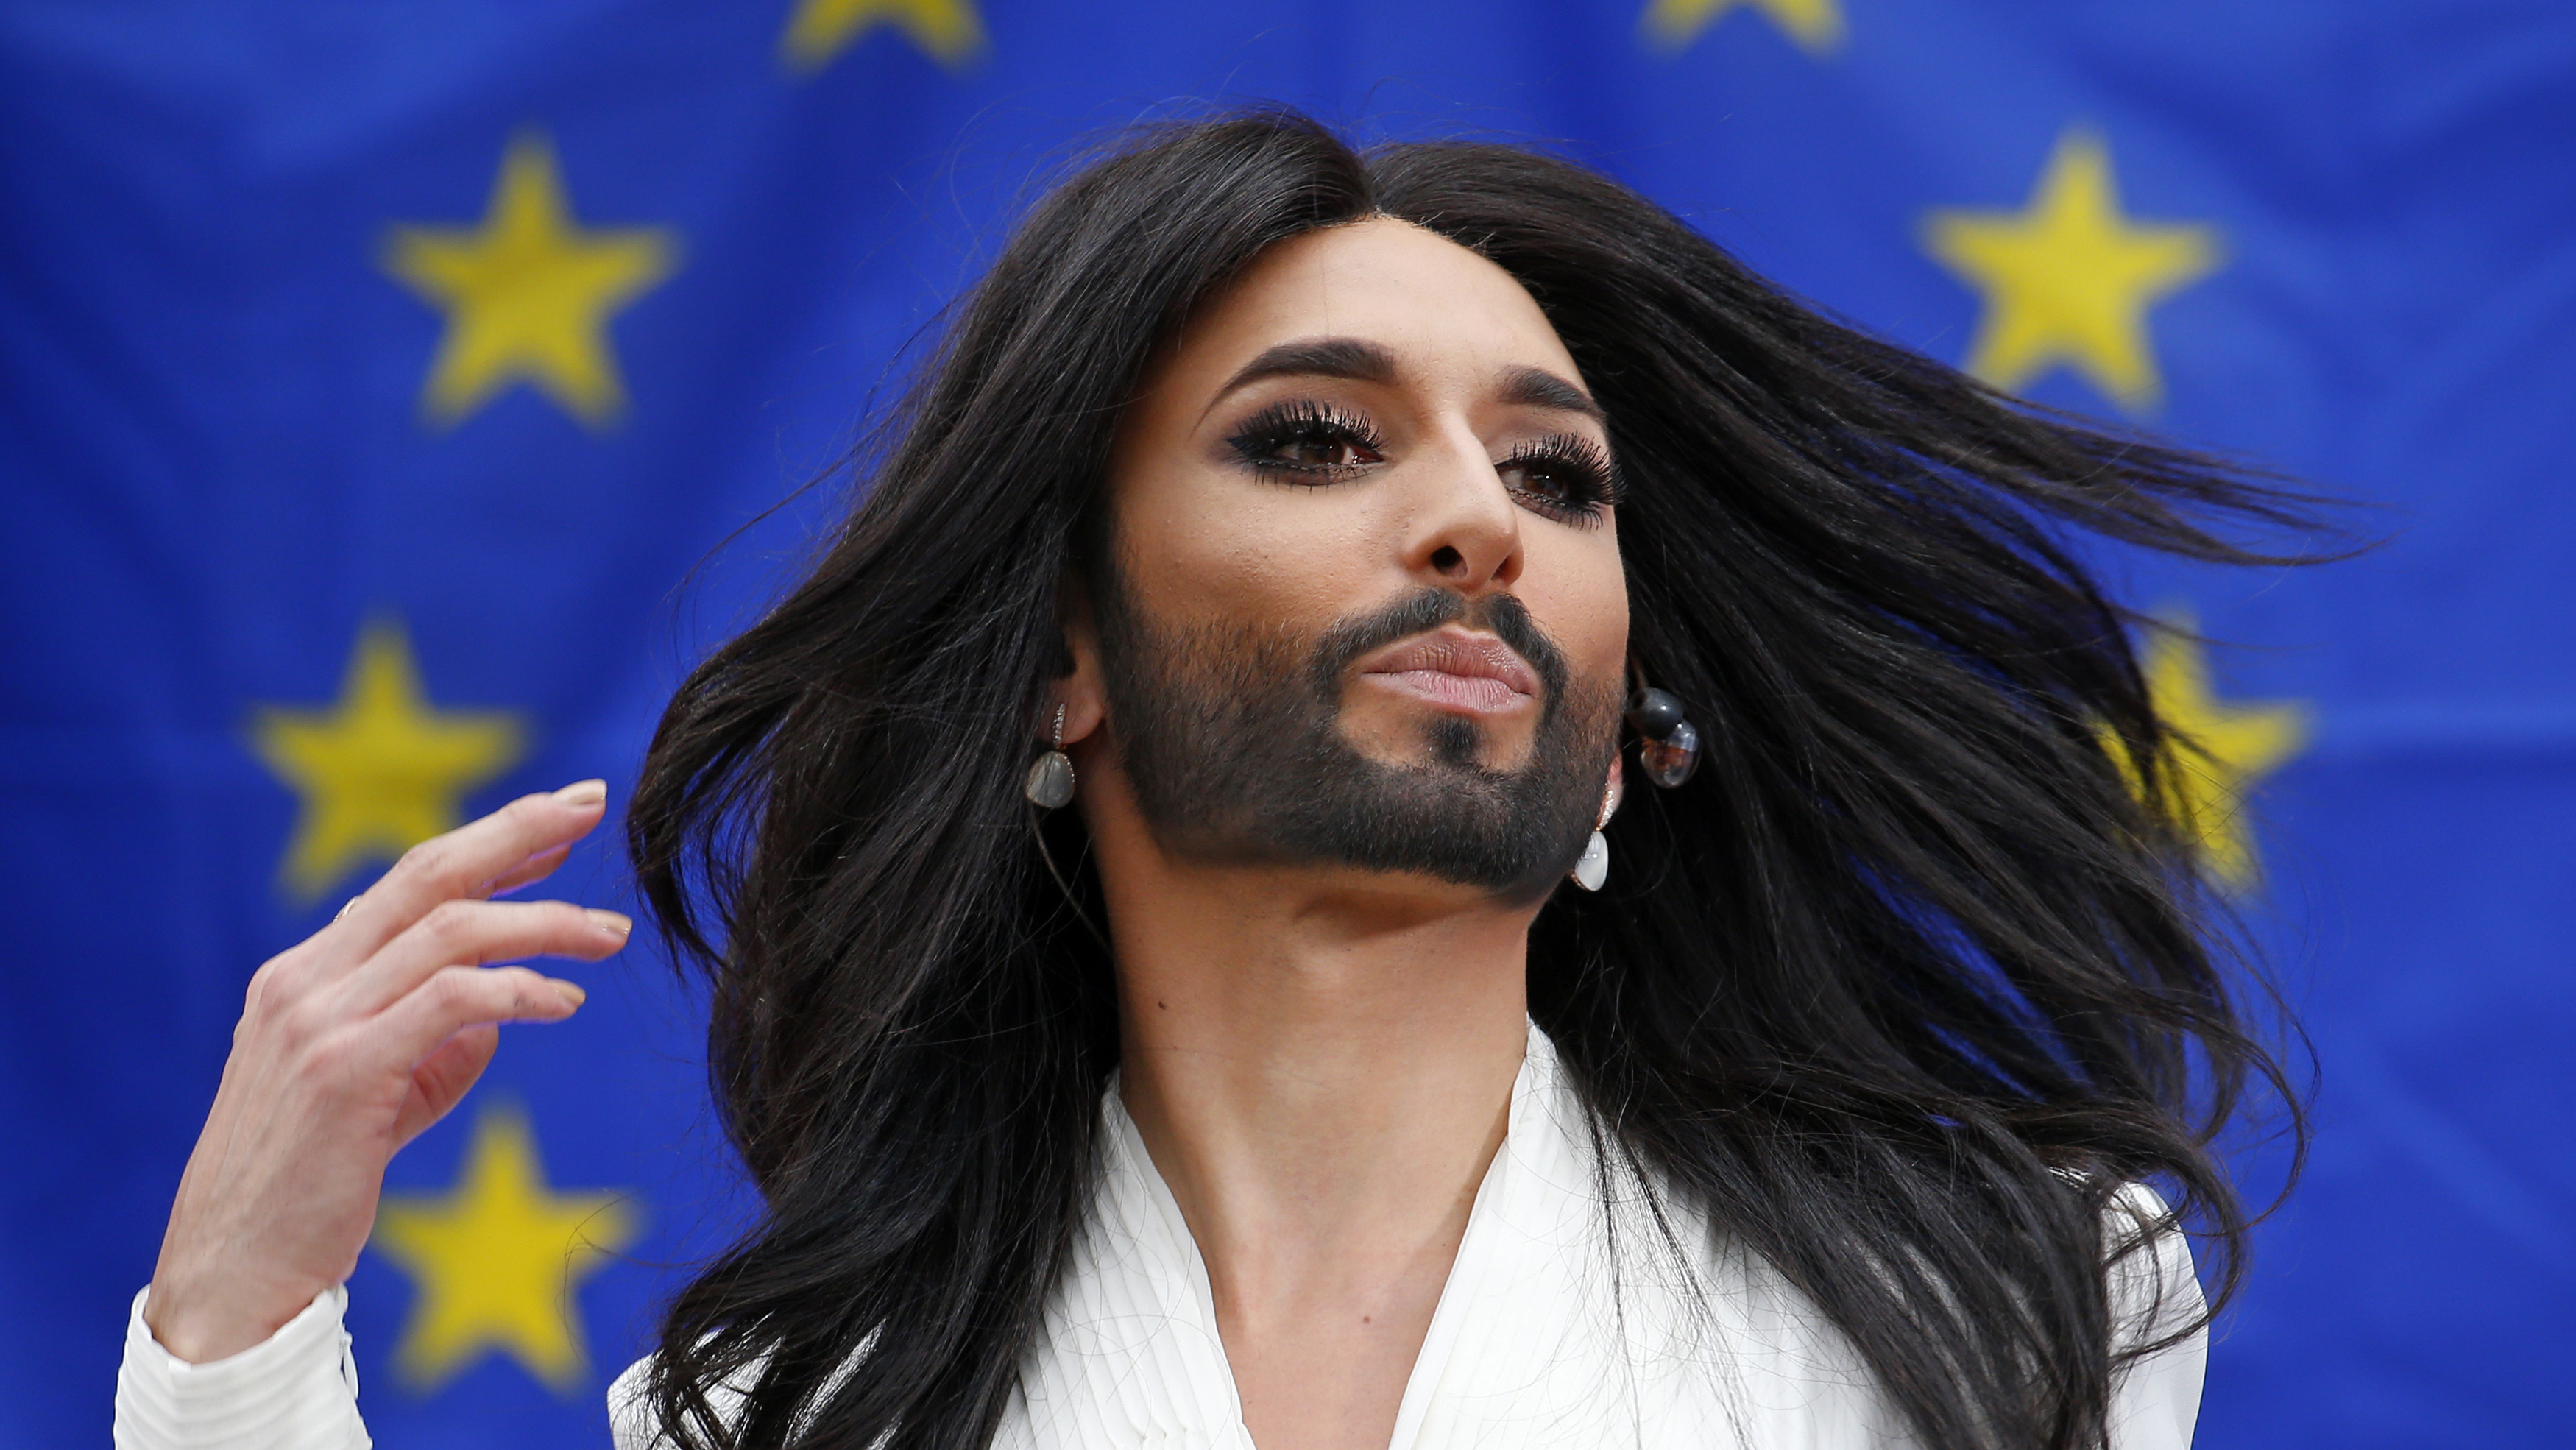 Conchita Wurst, the bearded transgender winner of the Eurovision Song Contest, performs during a concert at the European Parliament in Brussels October 8, 2014. The concert organised by members of Parliament aimed to support the adoption in February of the report against homophobia and sexual discriminations. REUTERS/Yves Herman (BELGIUM - Tags: POLITICS ENTERTAINMENT) - RTR49DJA